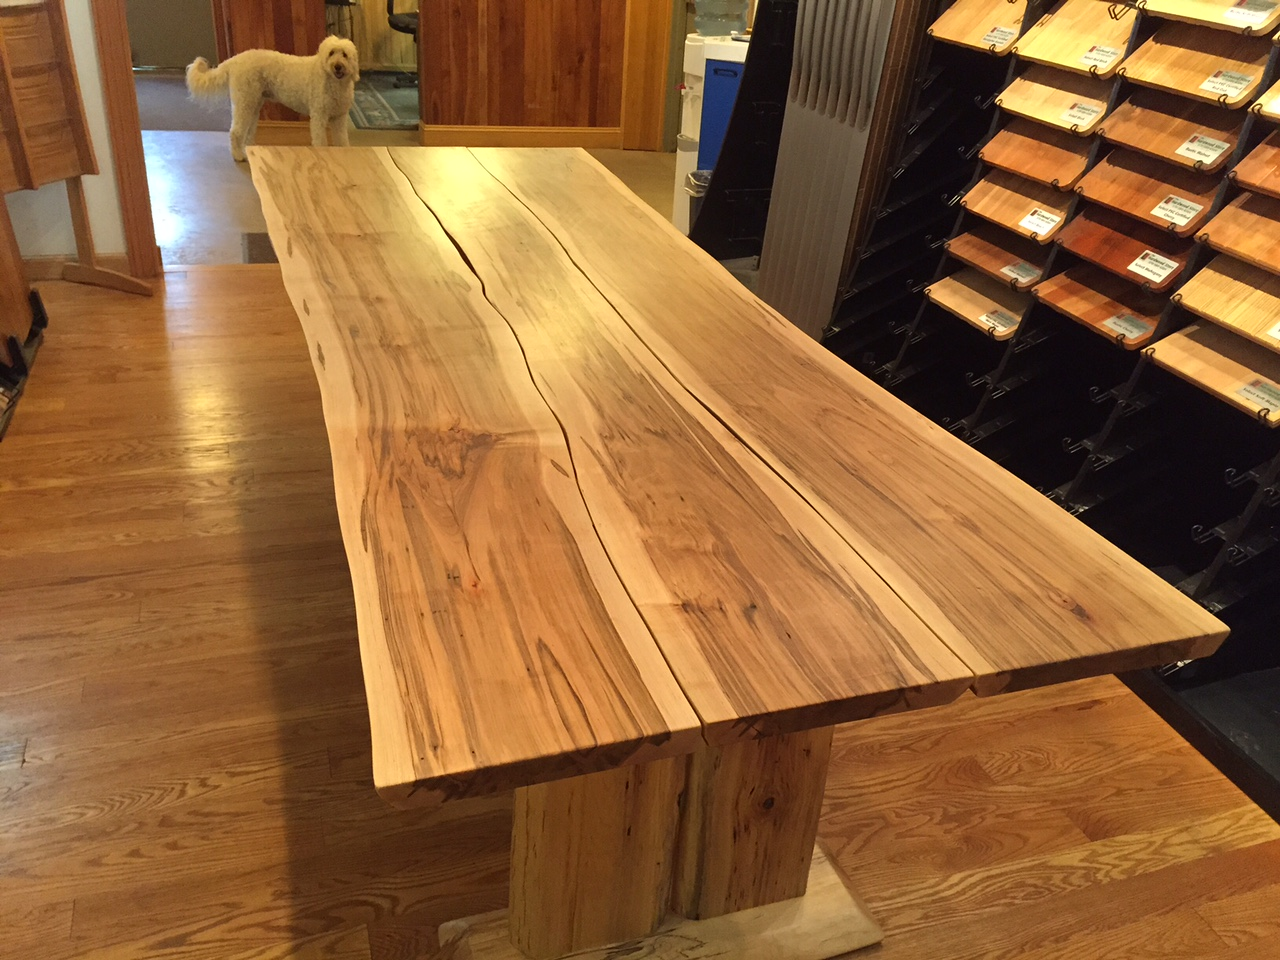 Maple Wood Furniture ~ Wormy maple or ambrosia lewis lumber products